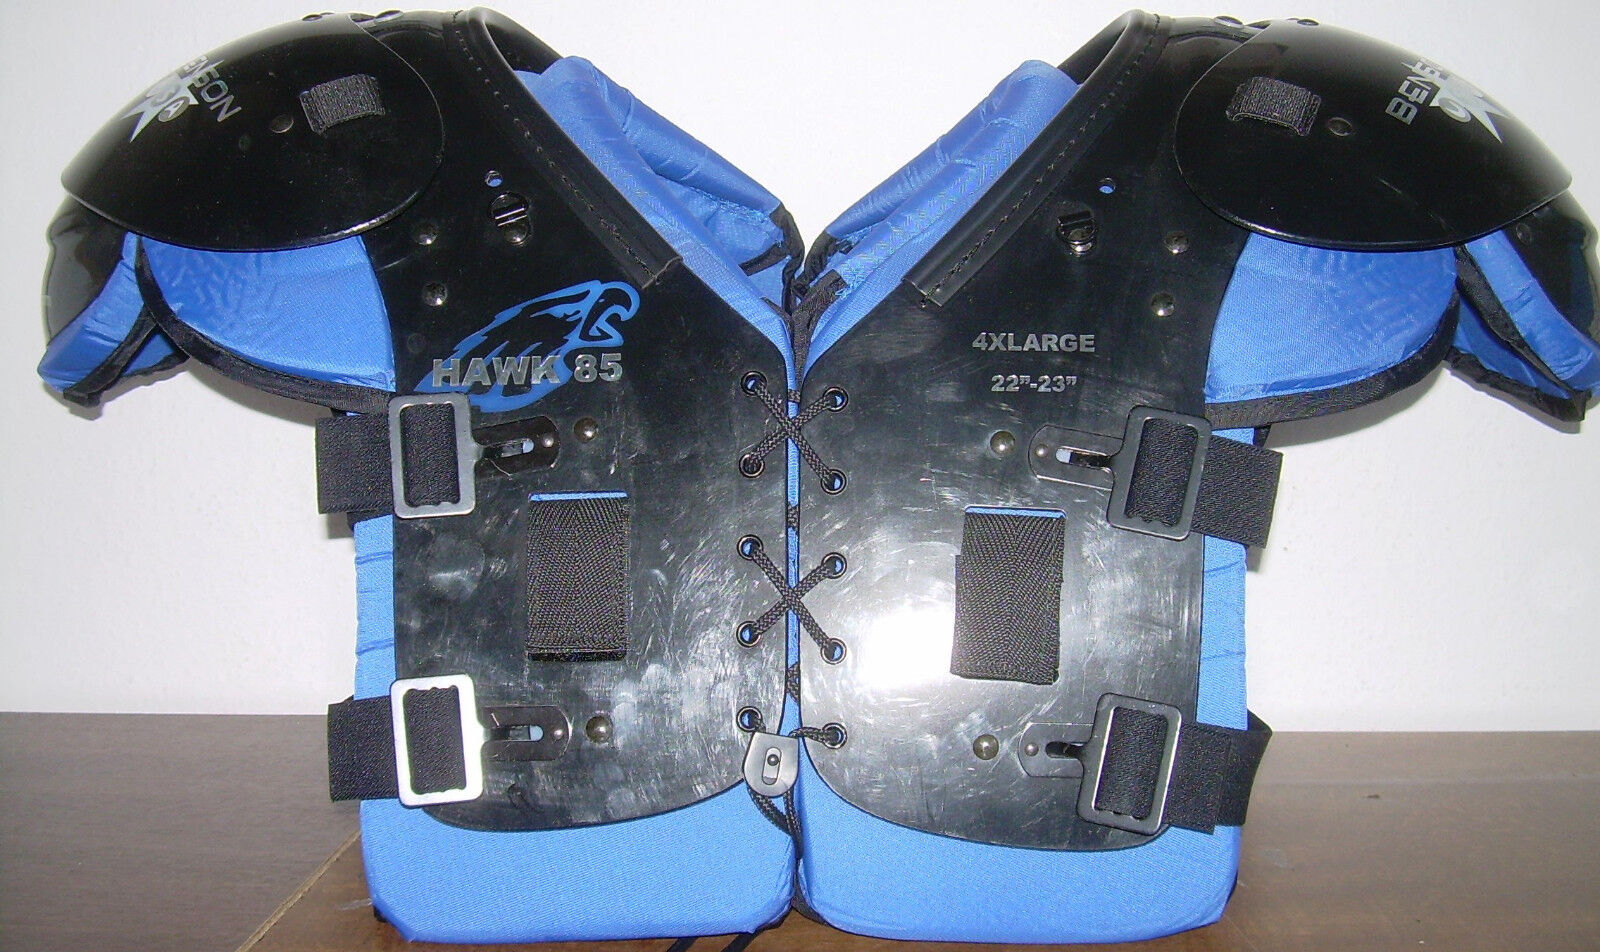 American Football Shoulderpad Benson Hawk 85, Gr. XXXXL, OL, DL, LB, FB, Neu